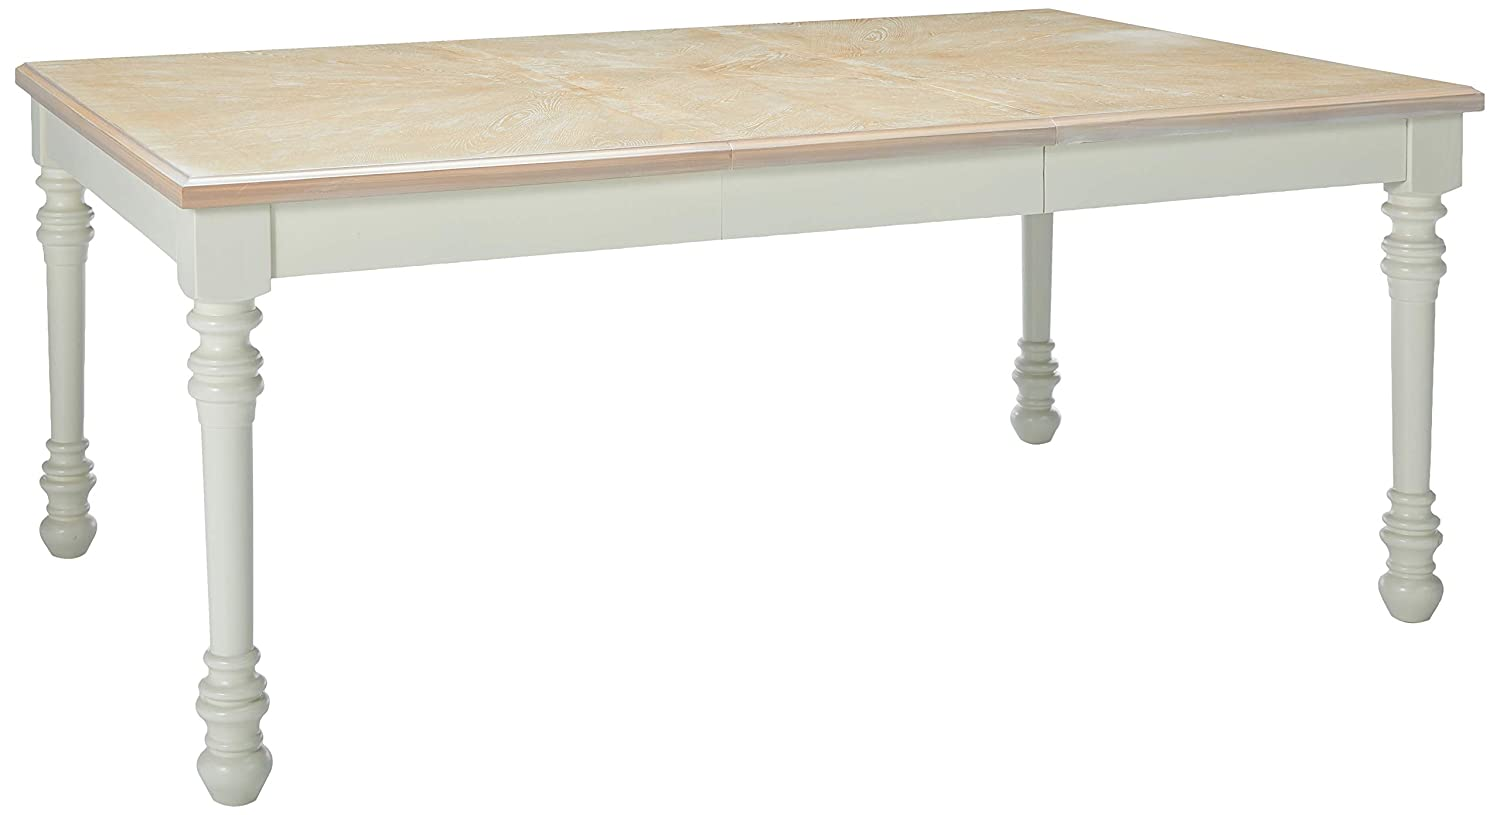 Country French ivory dining table with birch top.